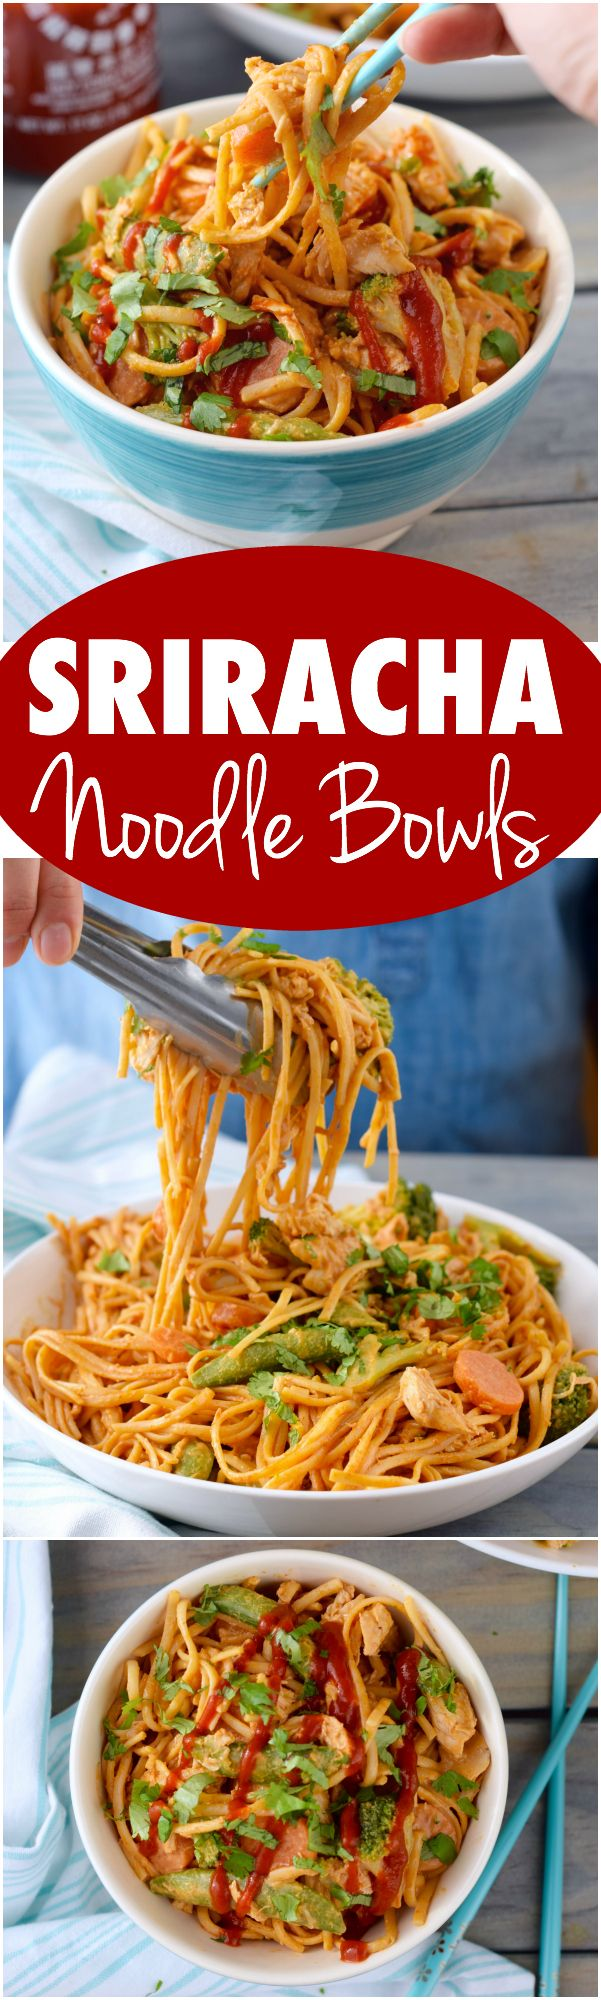 These Sriracha Noodles Bowls are full of veggies, chicken, and amazing flavor!: